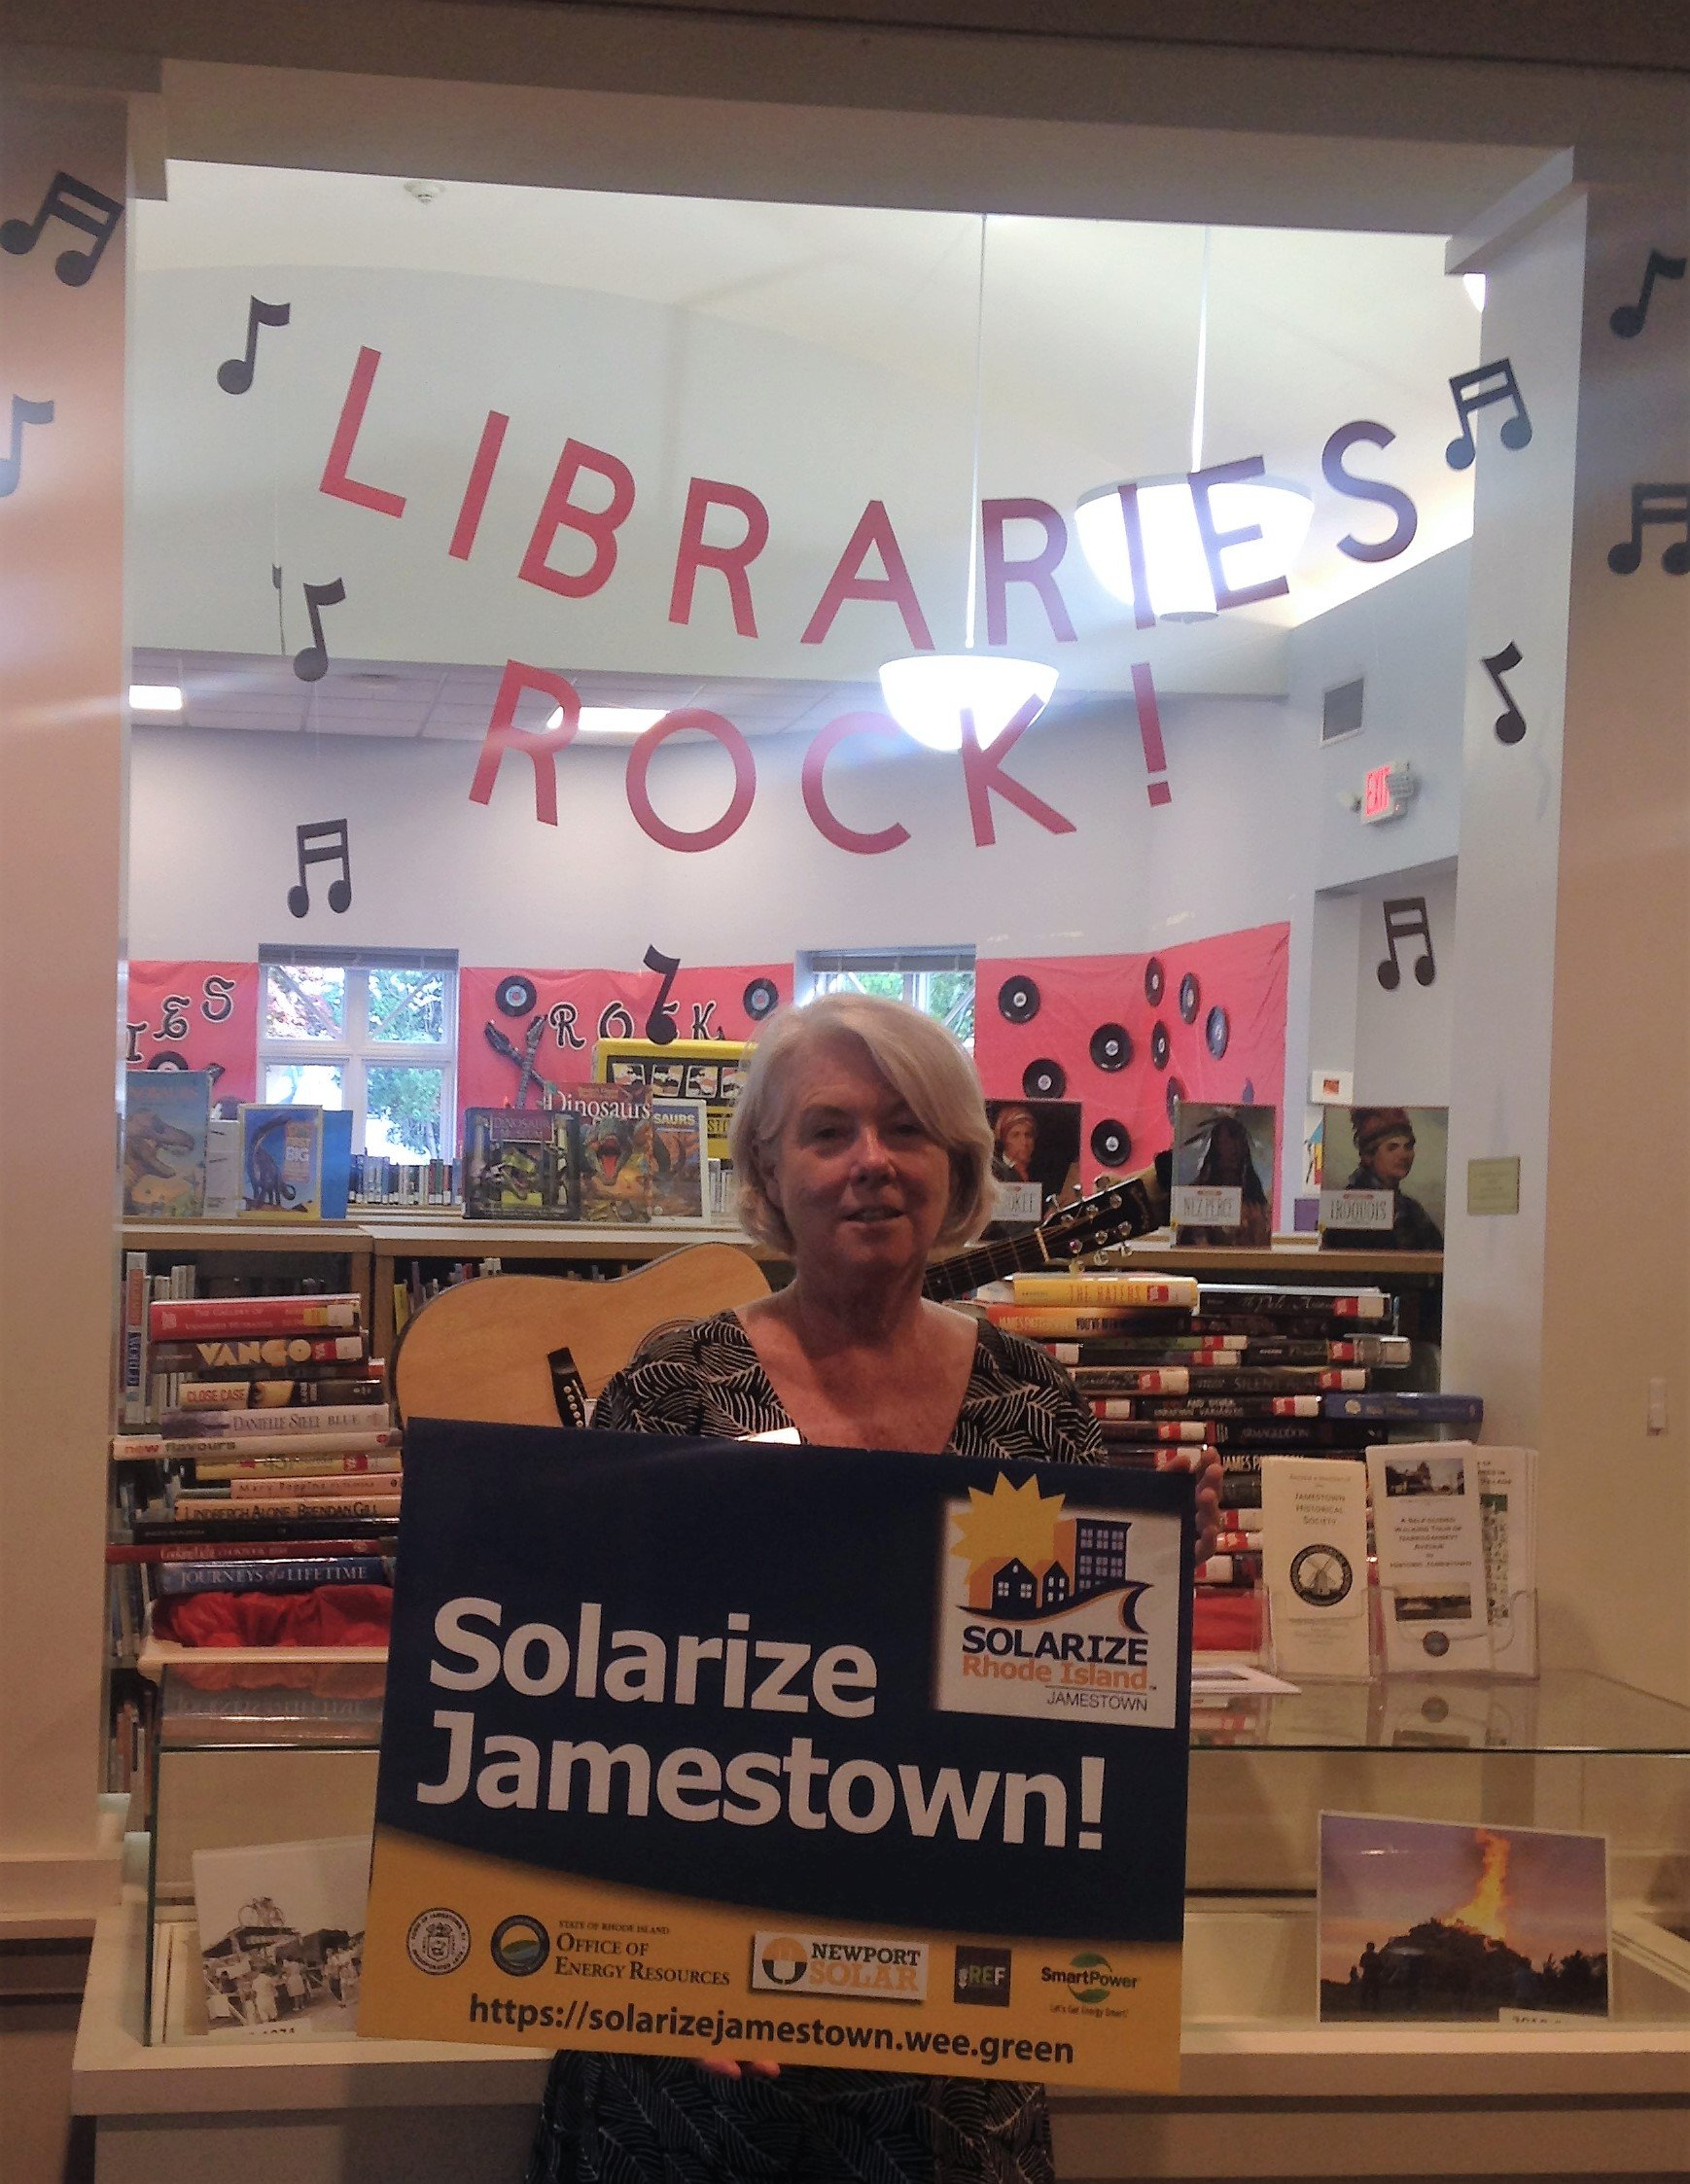 Solarize Jamestown Sign Up Event at Philomenian Library